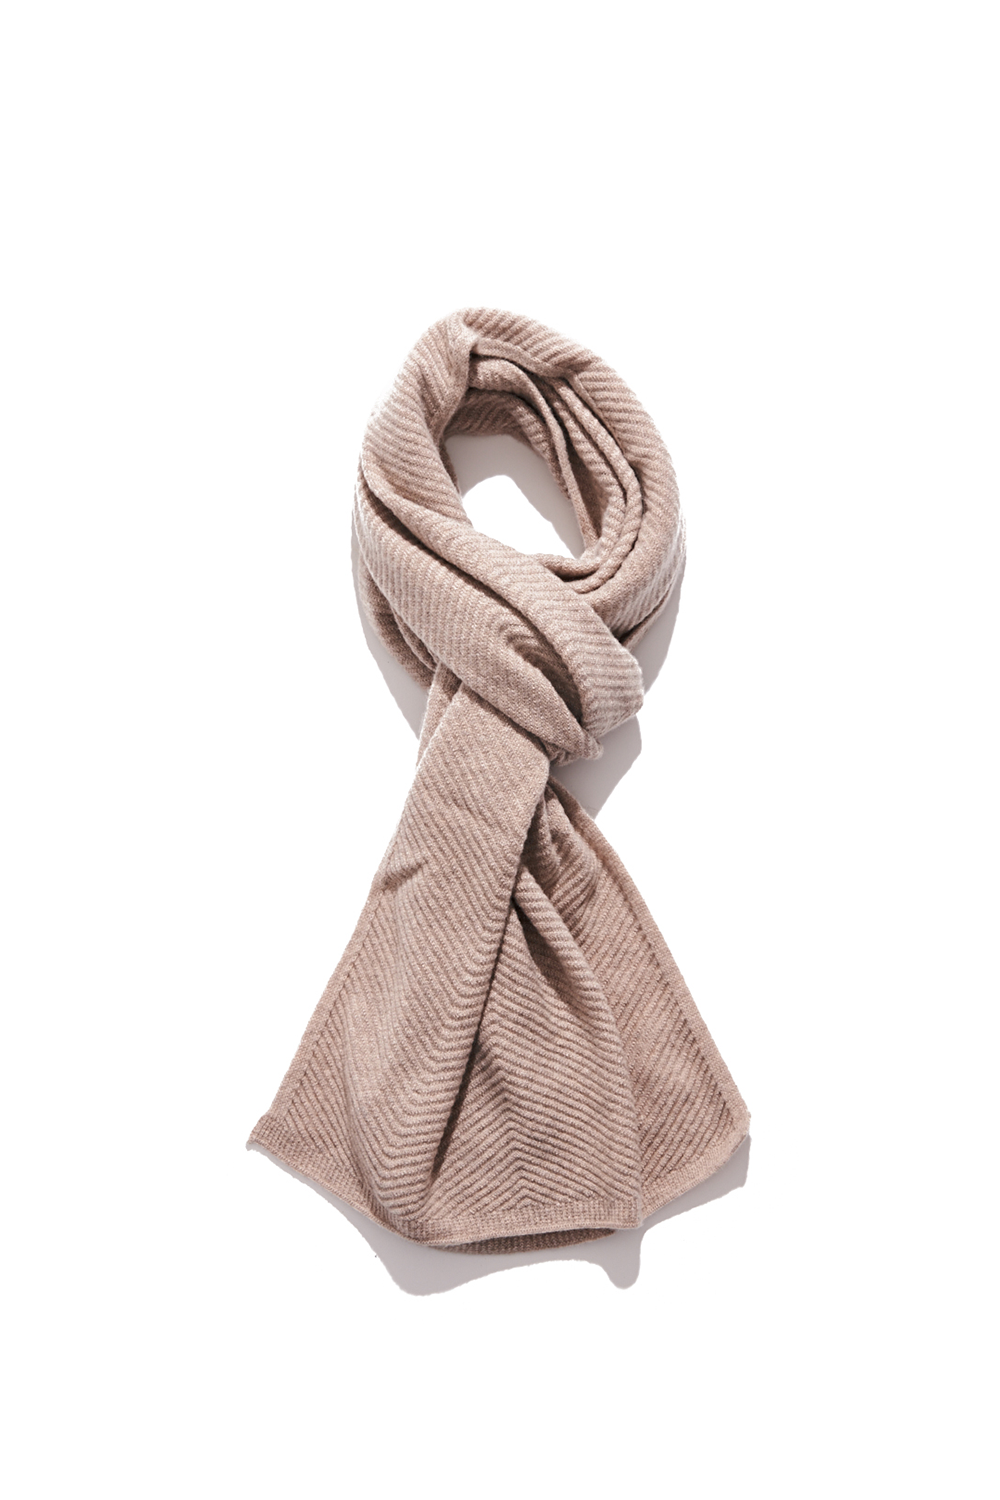 Premium pure cashmere100 whole-garment knitting shawl and scarf - Oatmeal (12월 24일 2차 재입고 완료/주문가능)